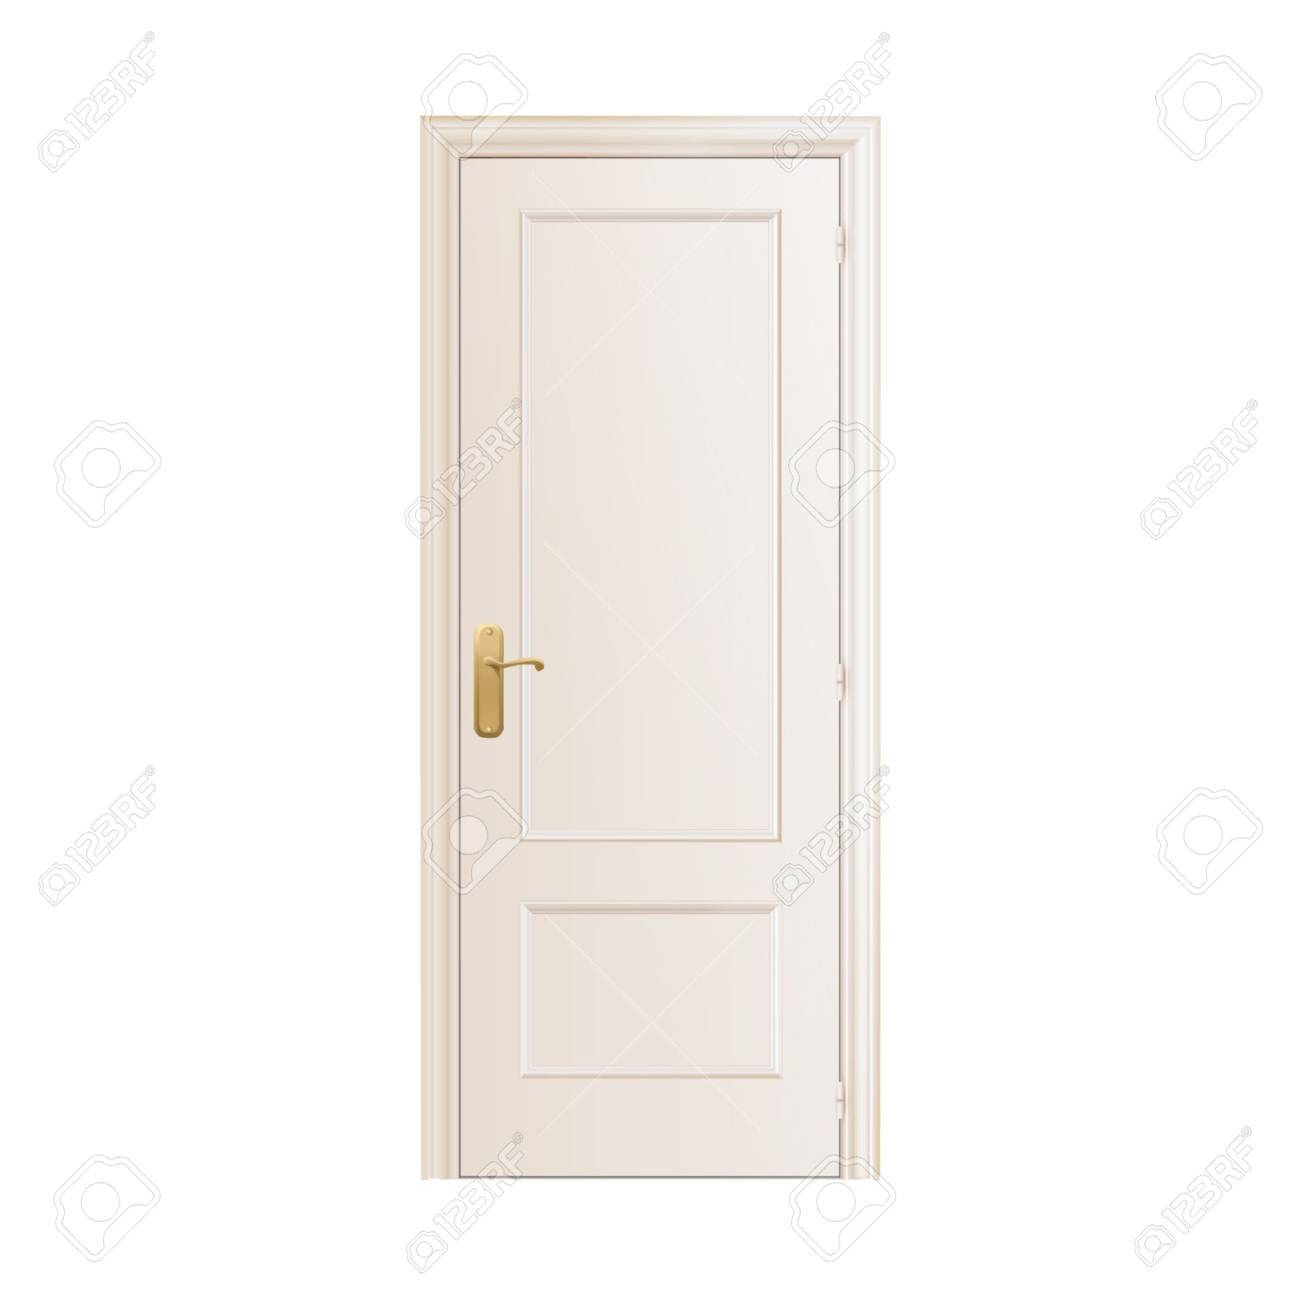 White door on isolated background. Stock Vector - 16867332